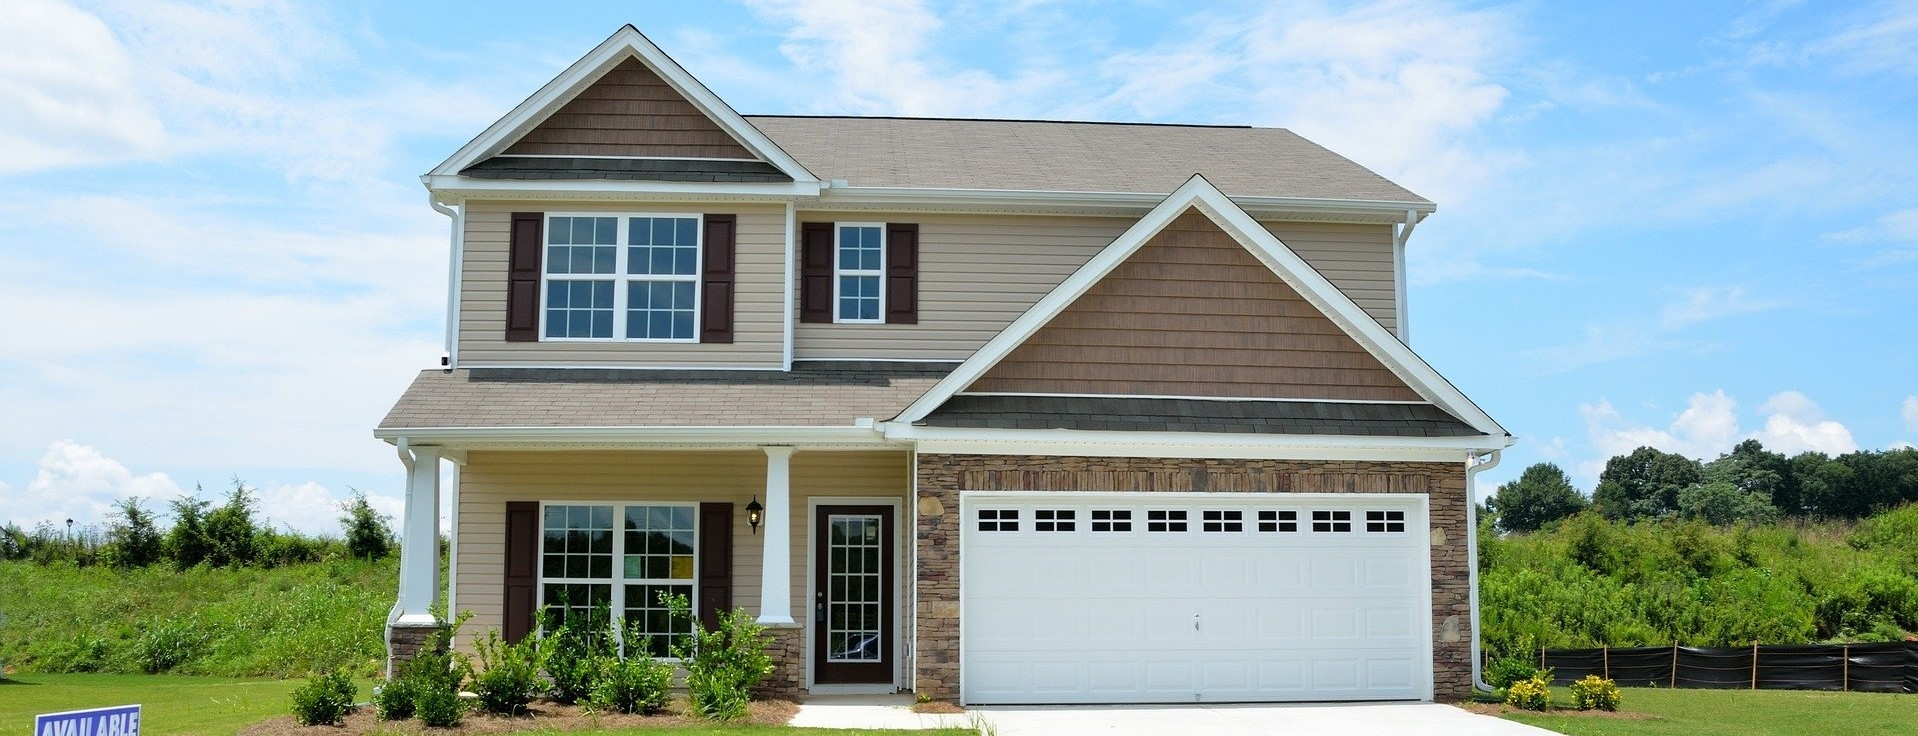 GC Home Inspection (@gchomeinspection) Cover Image